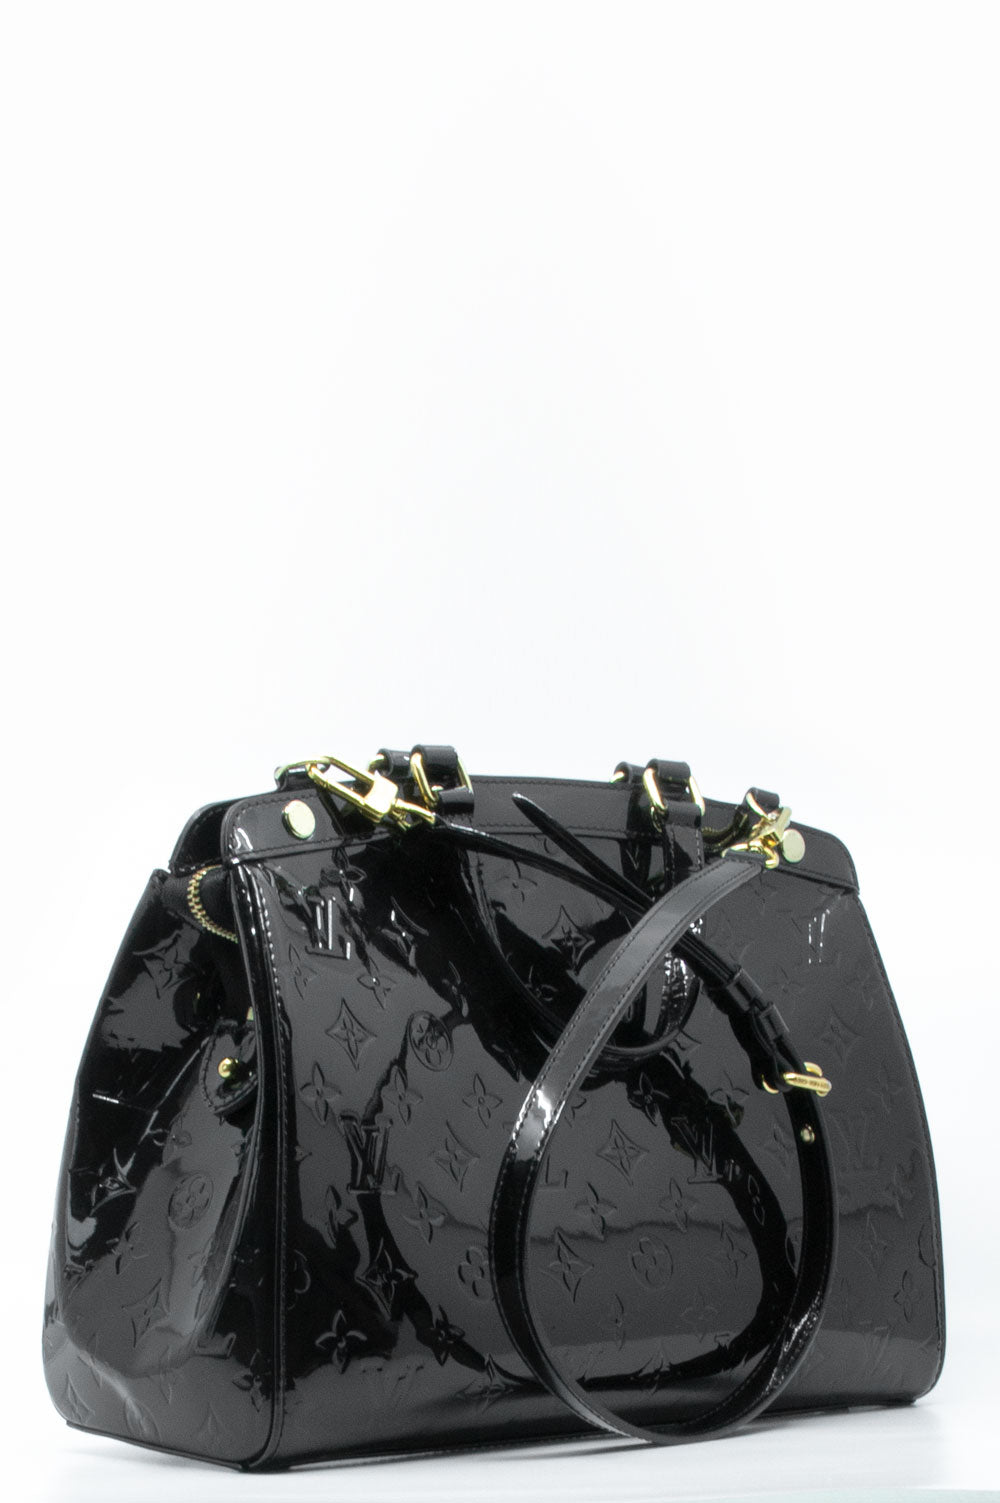 LOUIS VUITTON Brea Bag